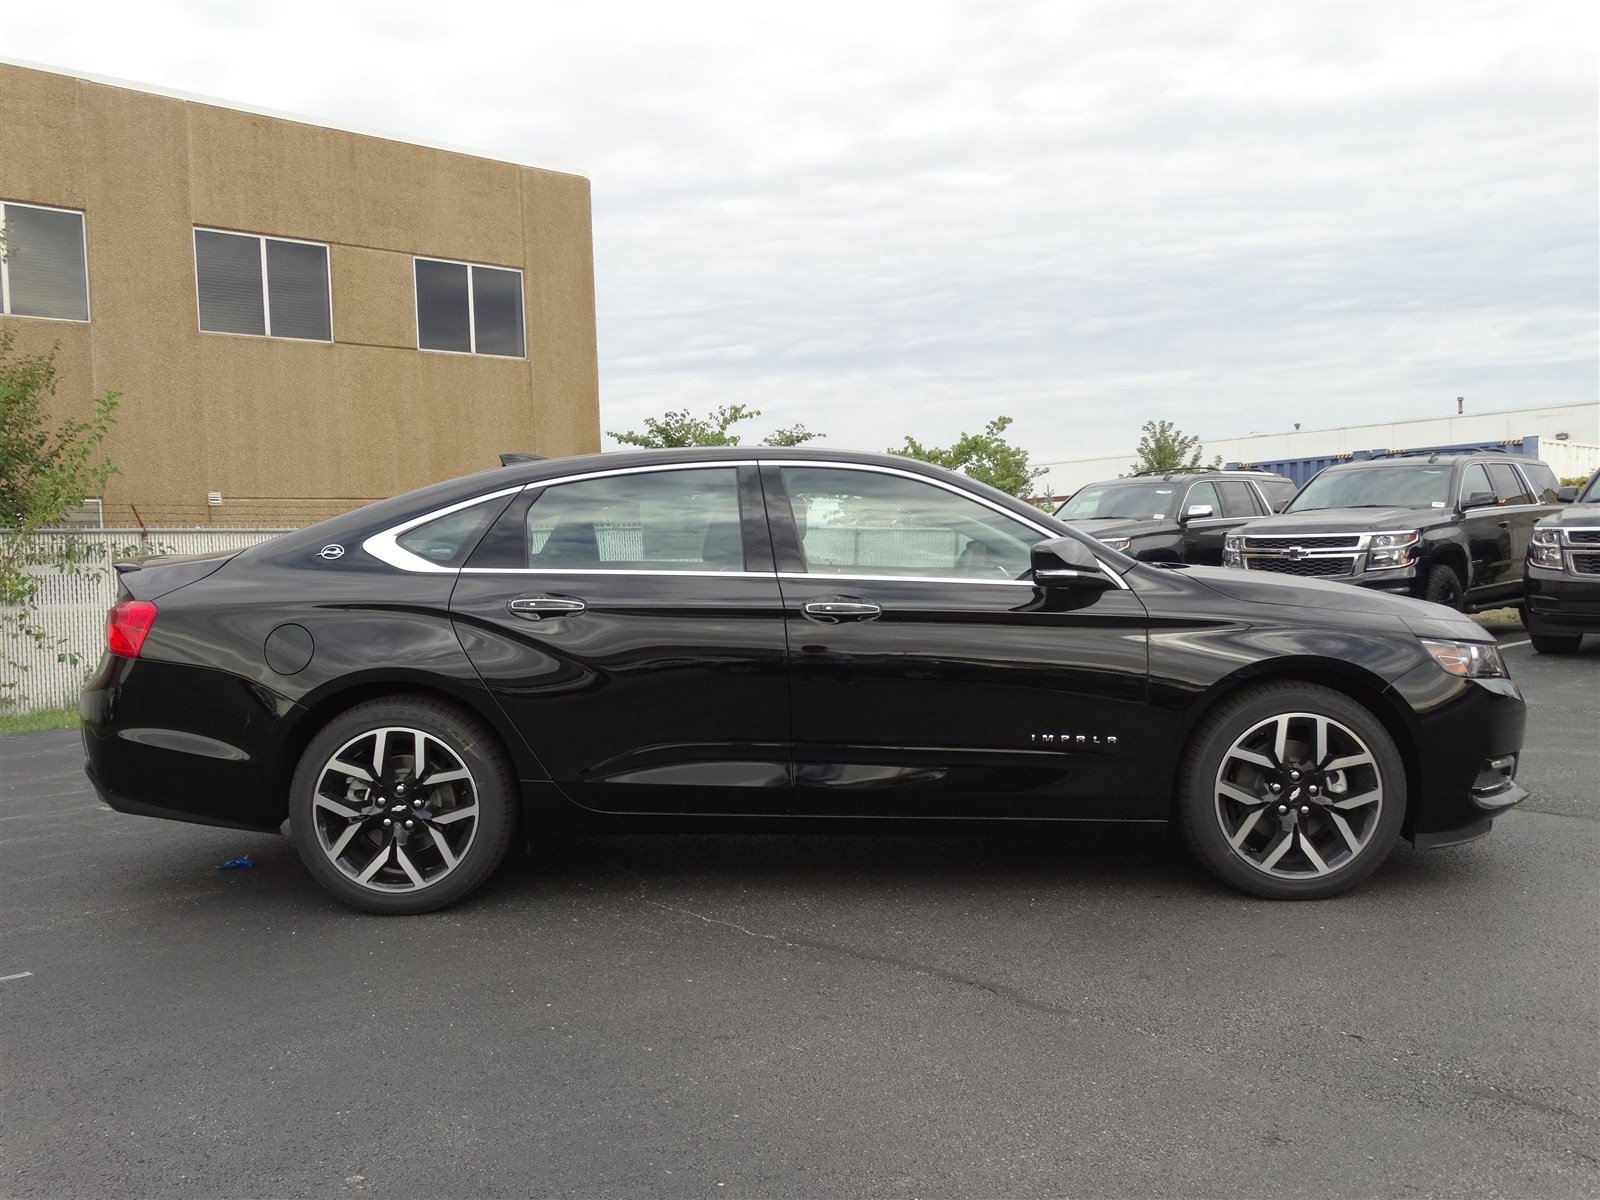 New 2018 Chevrolet Impala Premier 4dr Car In Naperville